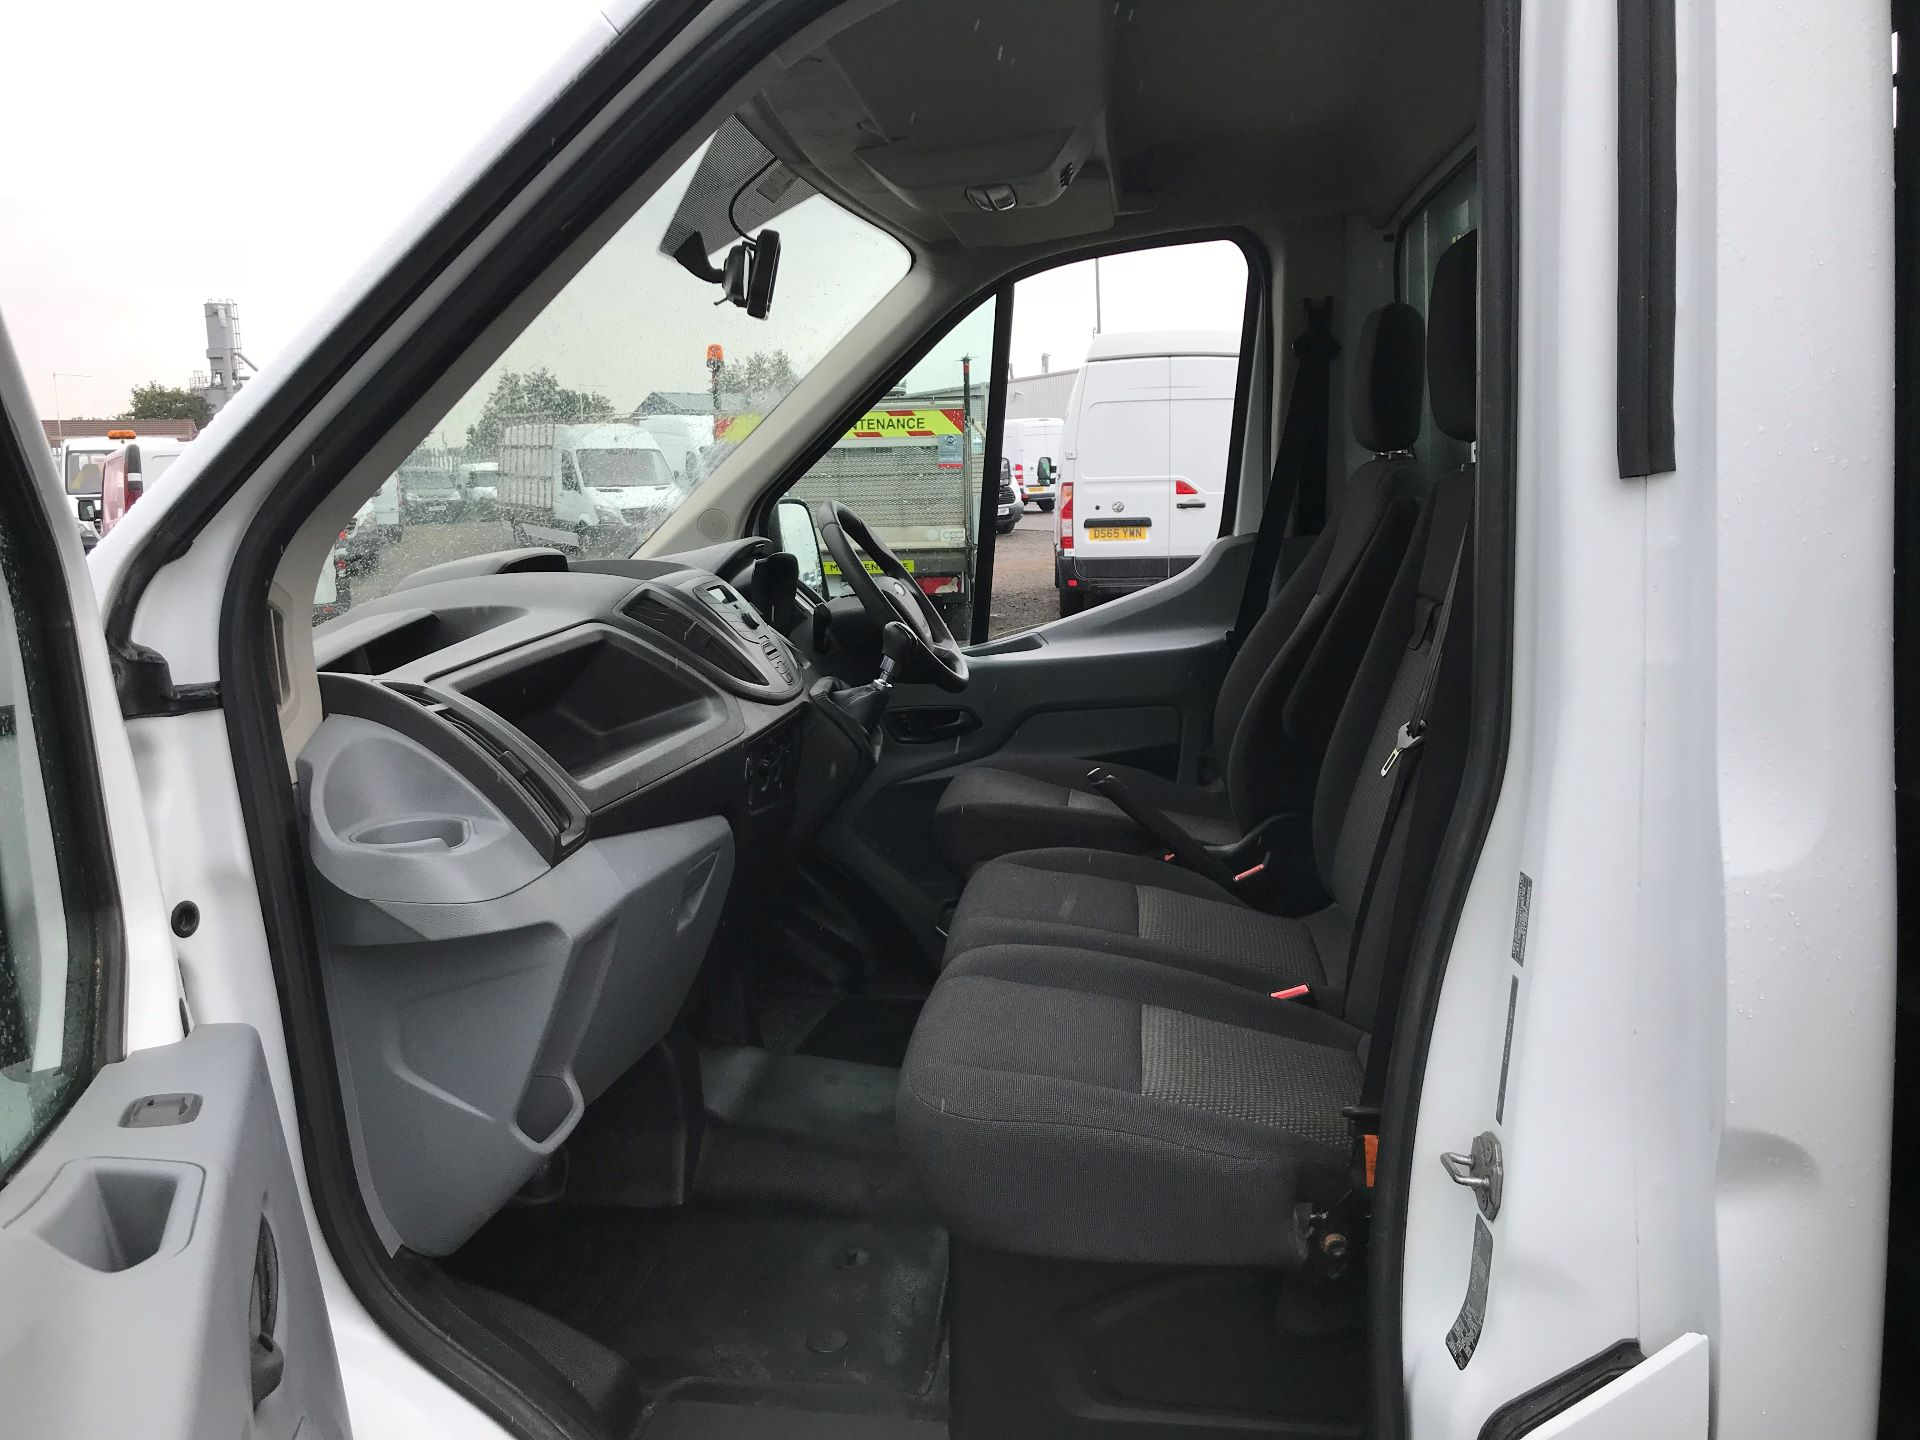 2016 Ford Transit 2.2 Tdci 125Ps Heavy Duty Chassis Cab *VALUE RANGE VEHICLE CONDITION REFLECTED IN PRICE*  (YS66SOE) Image 12